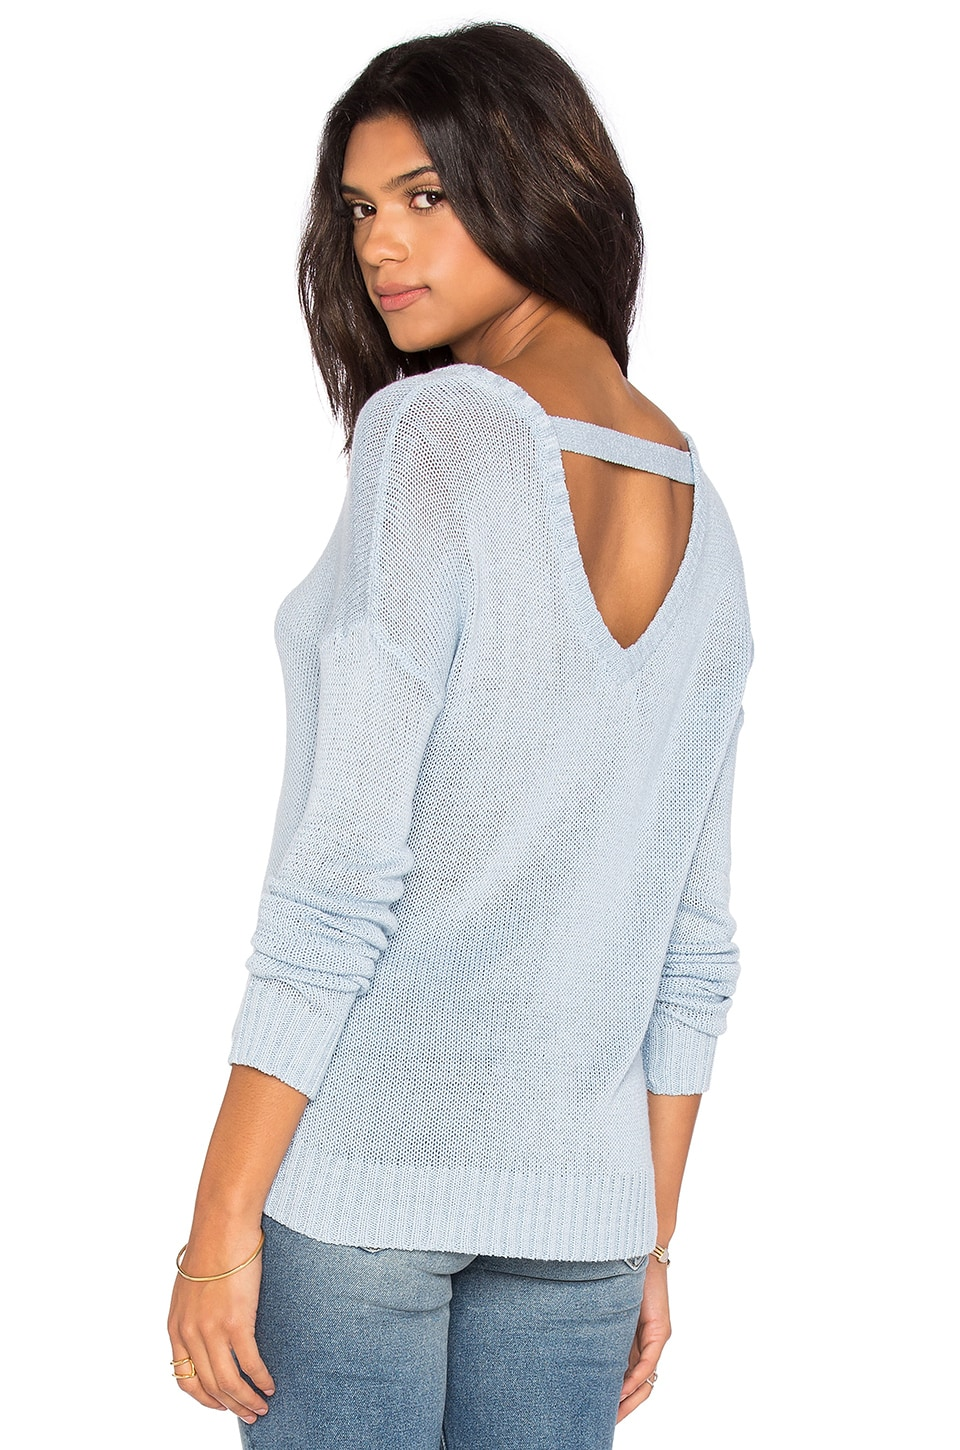 Feel the Piece Caribou Open back Sweater in Skyline